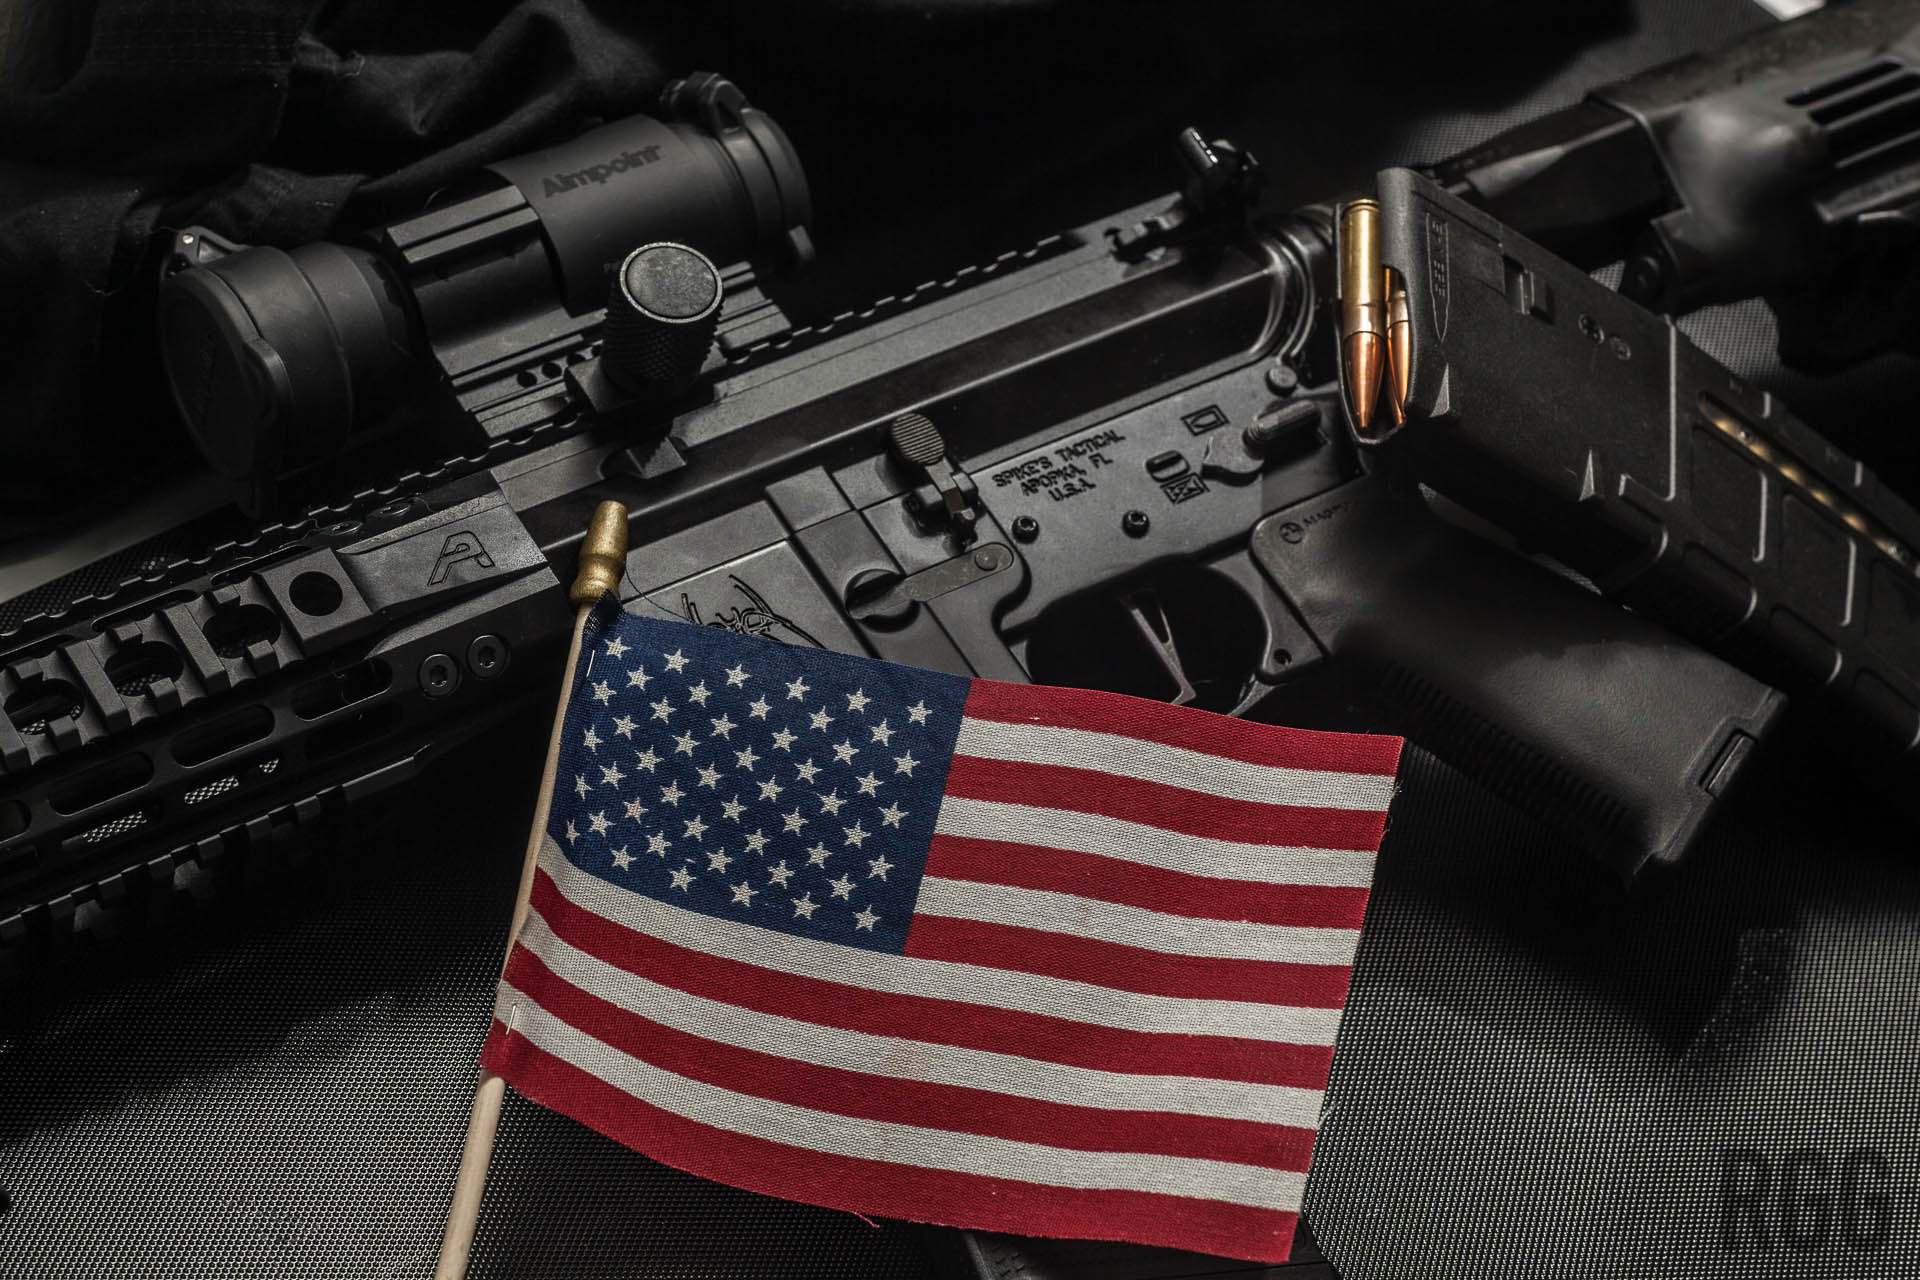 A right needs to be exercised to work. Buying or building an AR-15 guarantees that right.